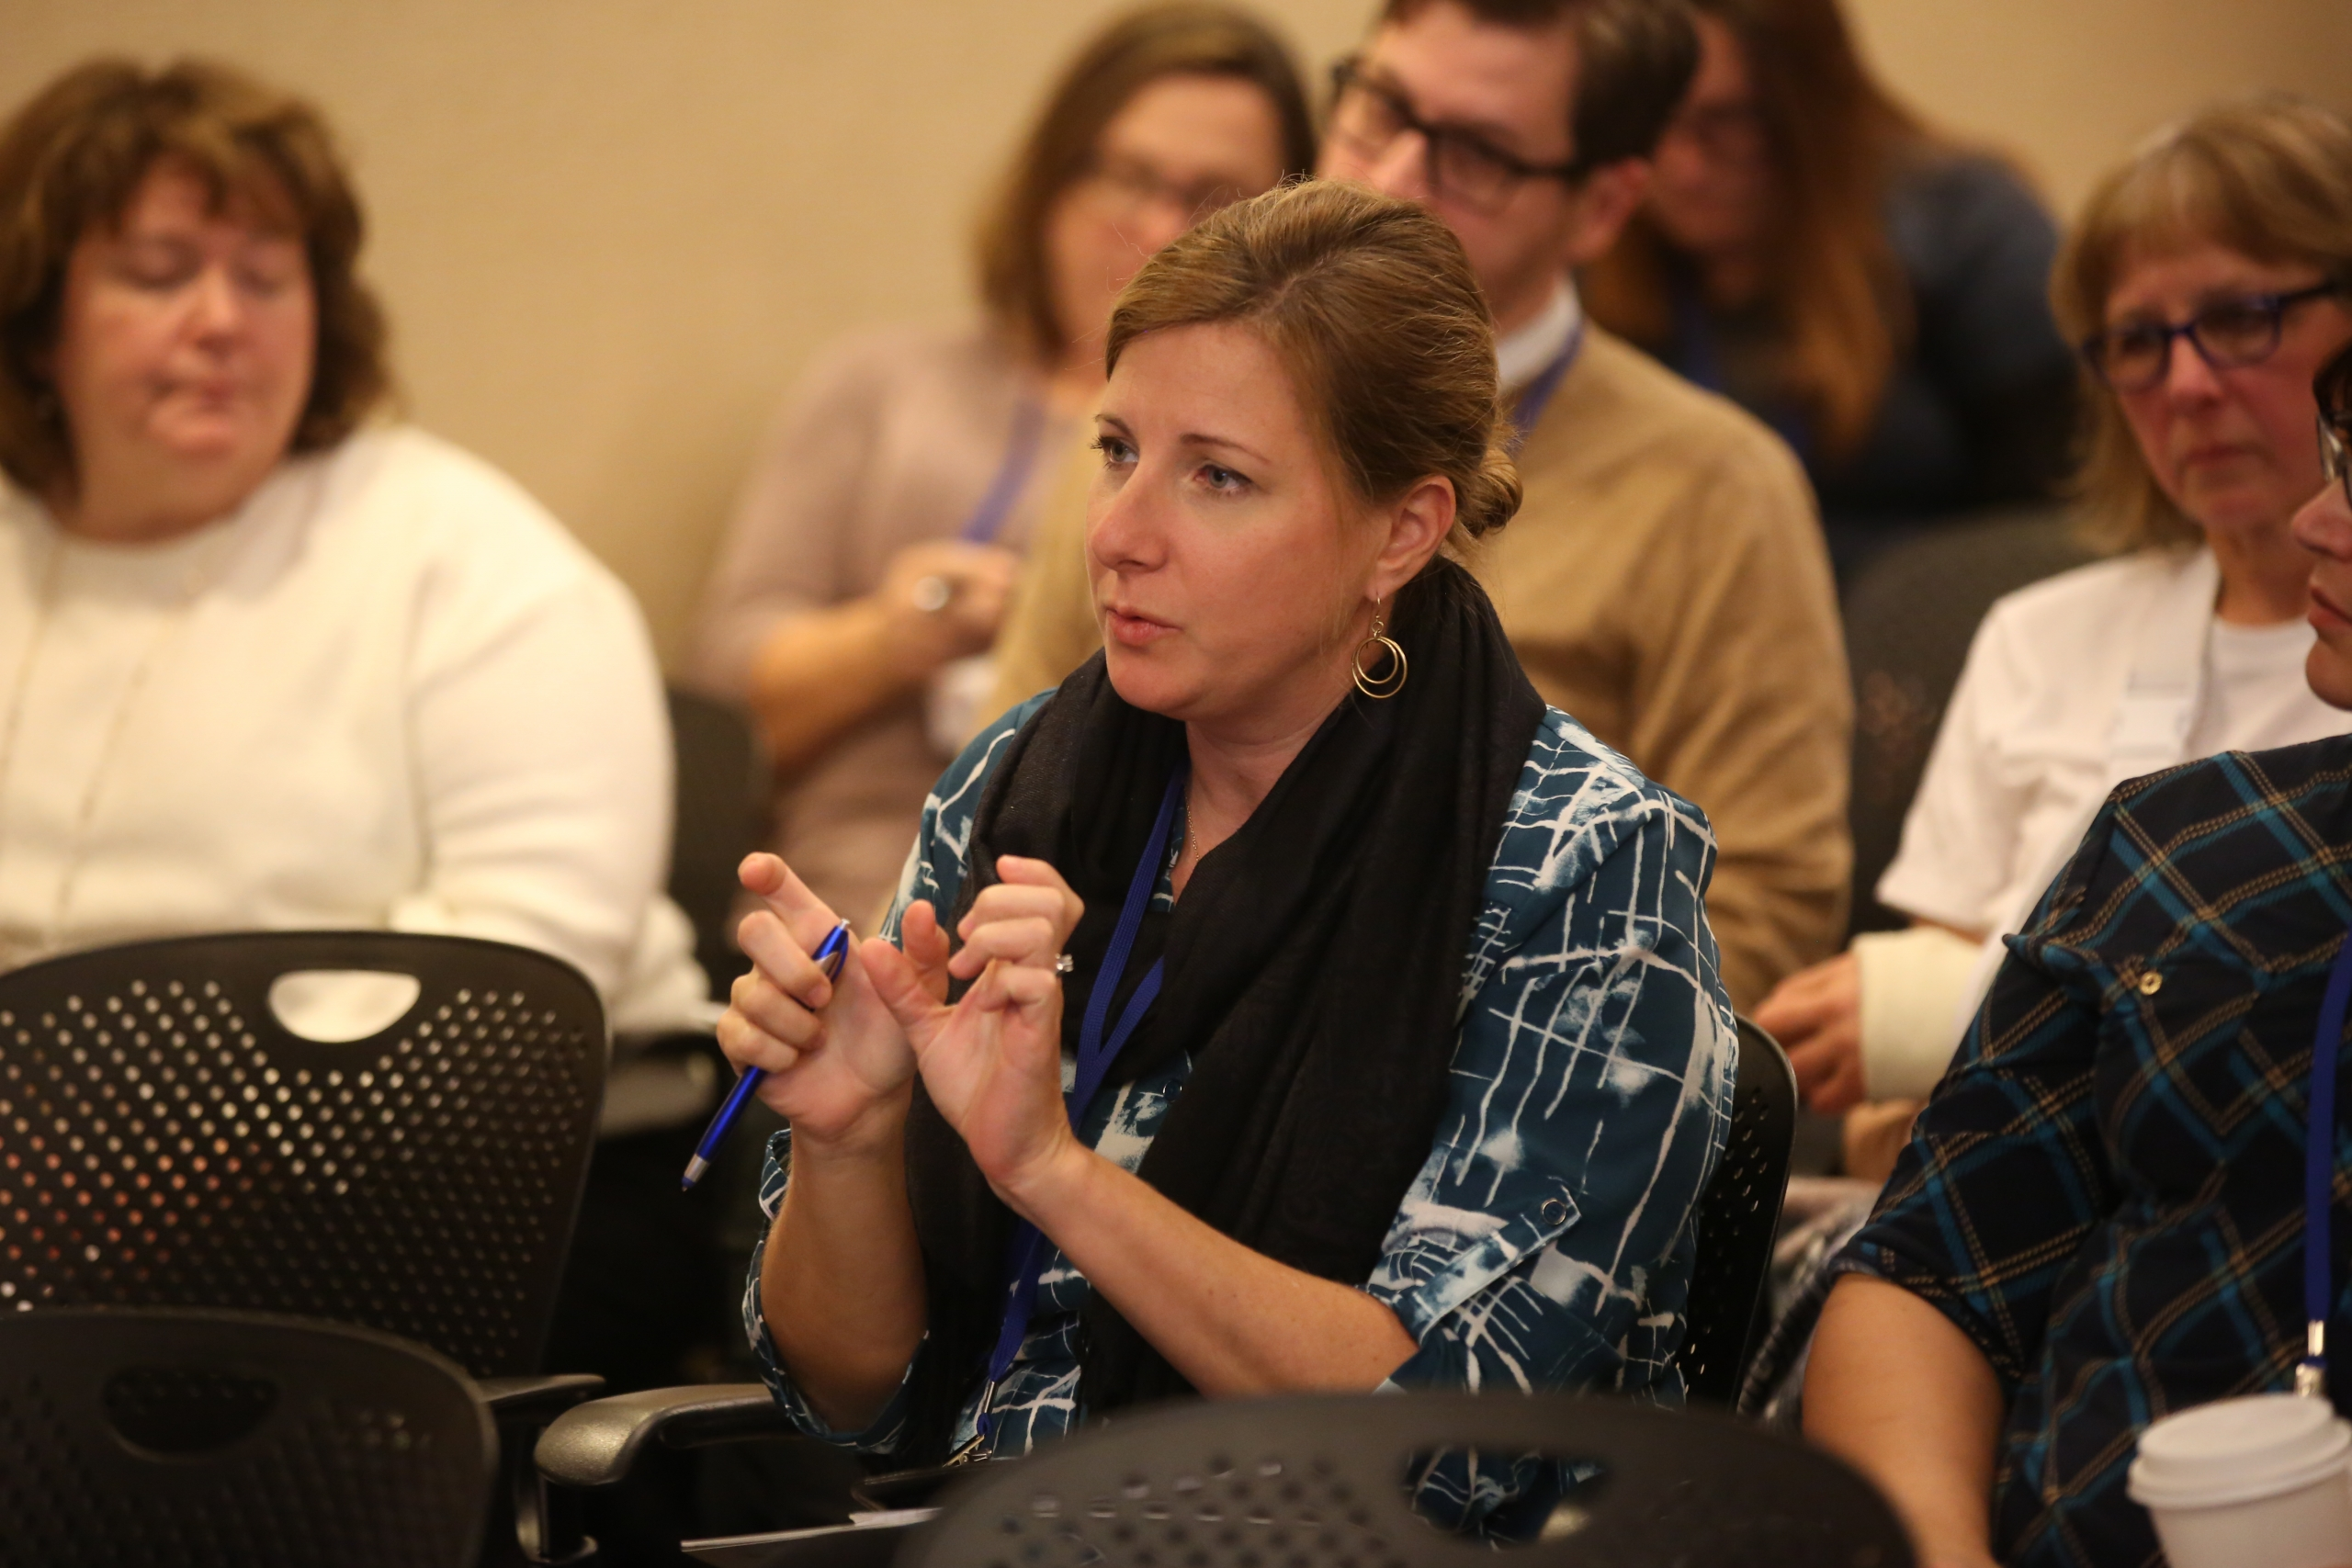 A woman asks a question during a breakout session